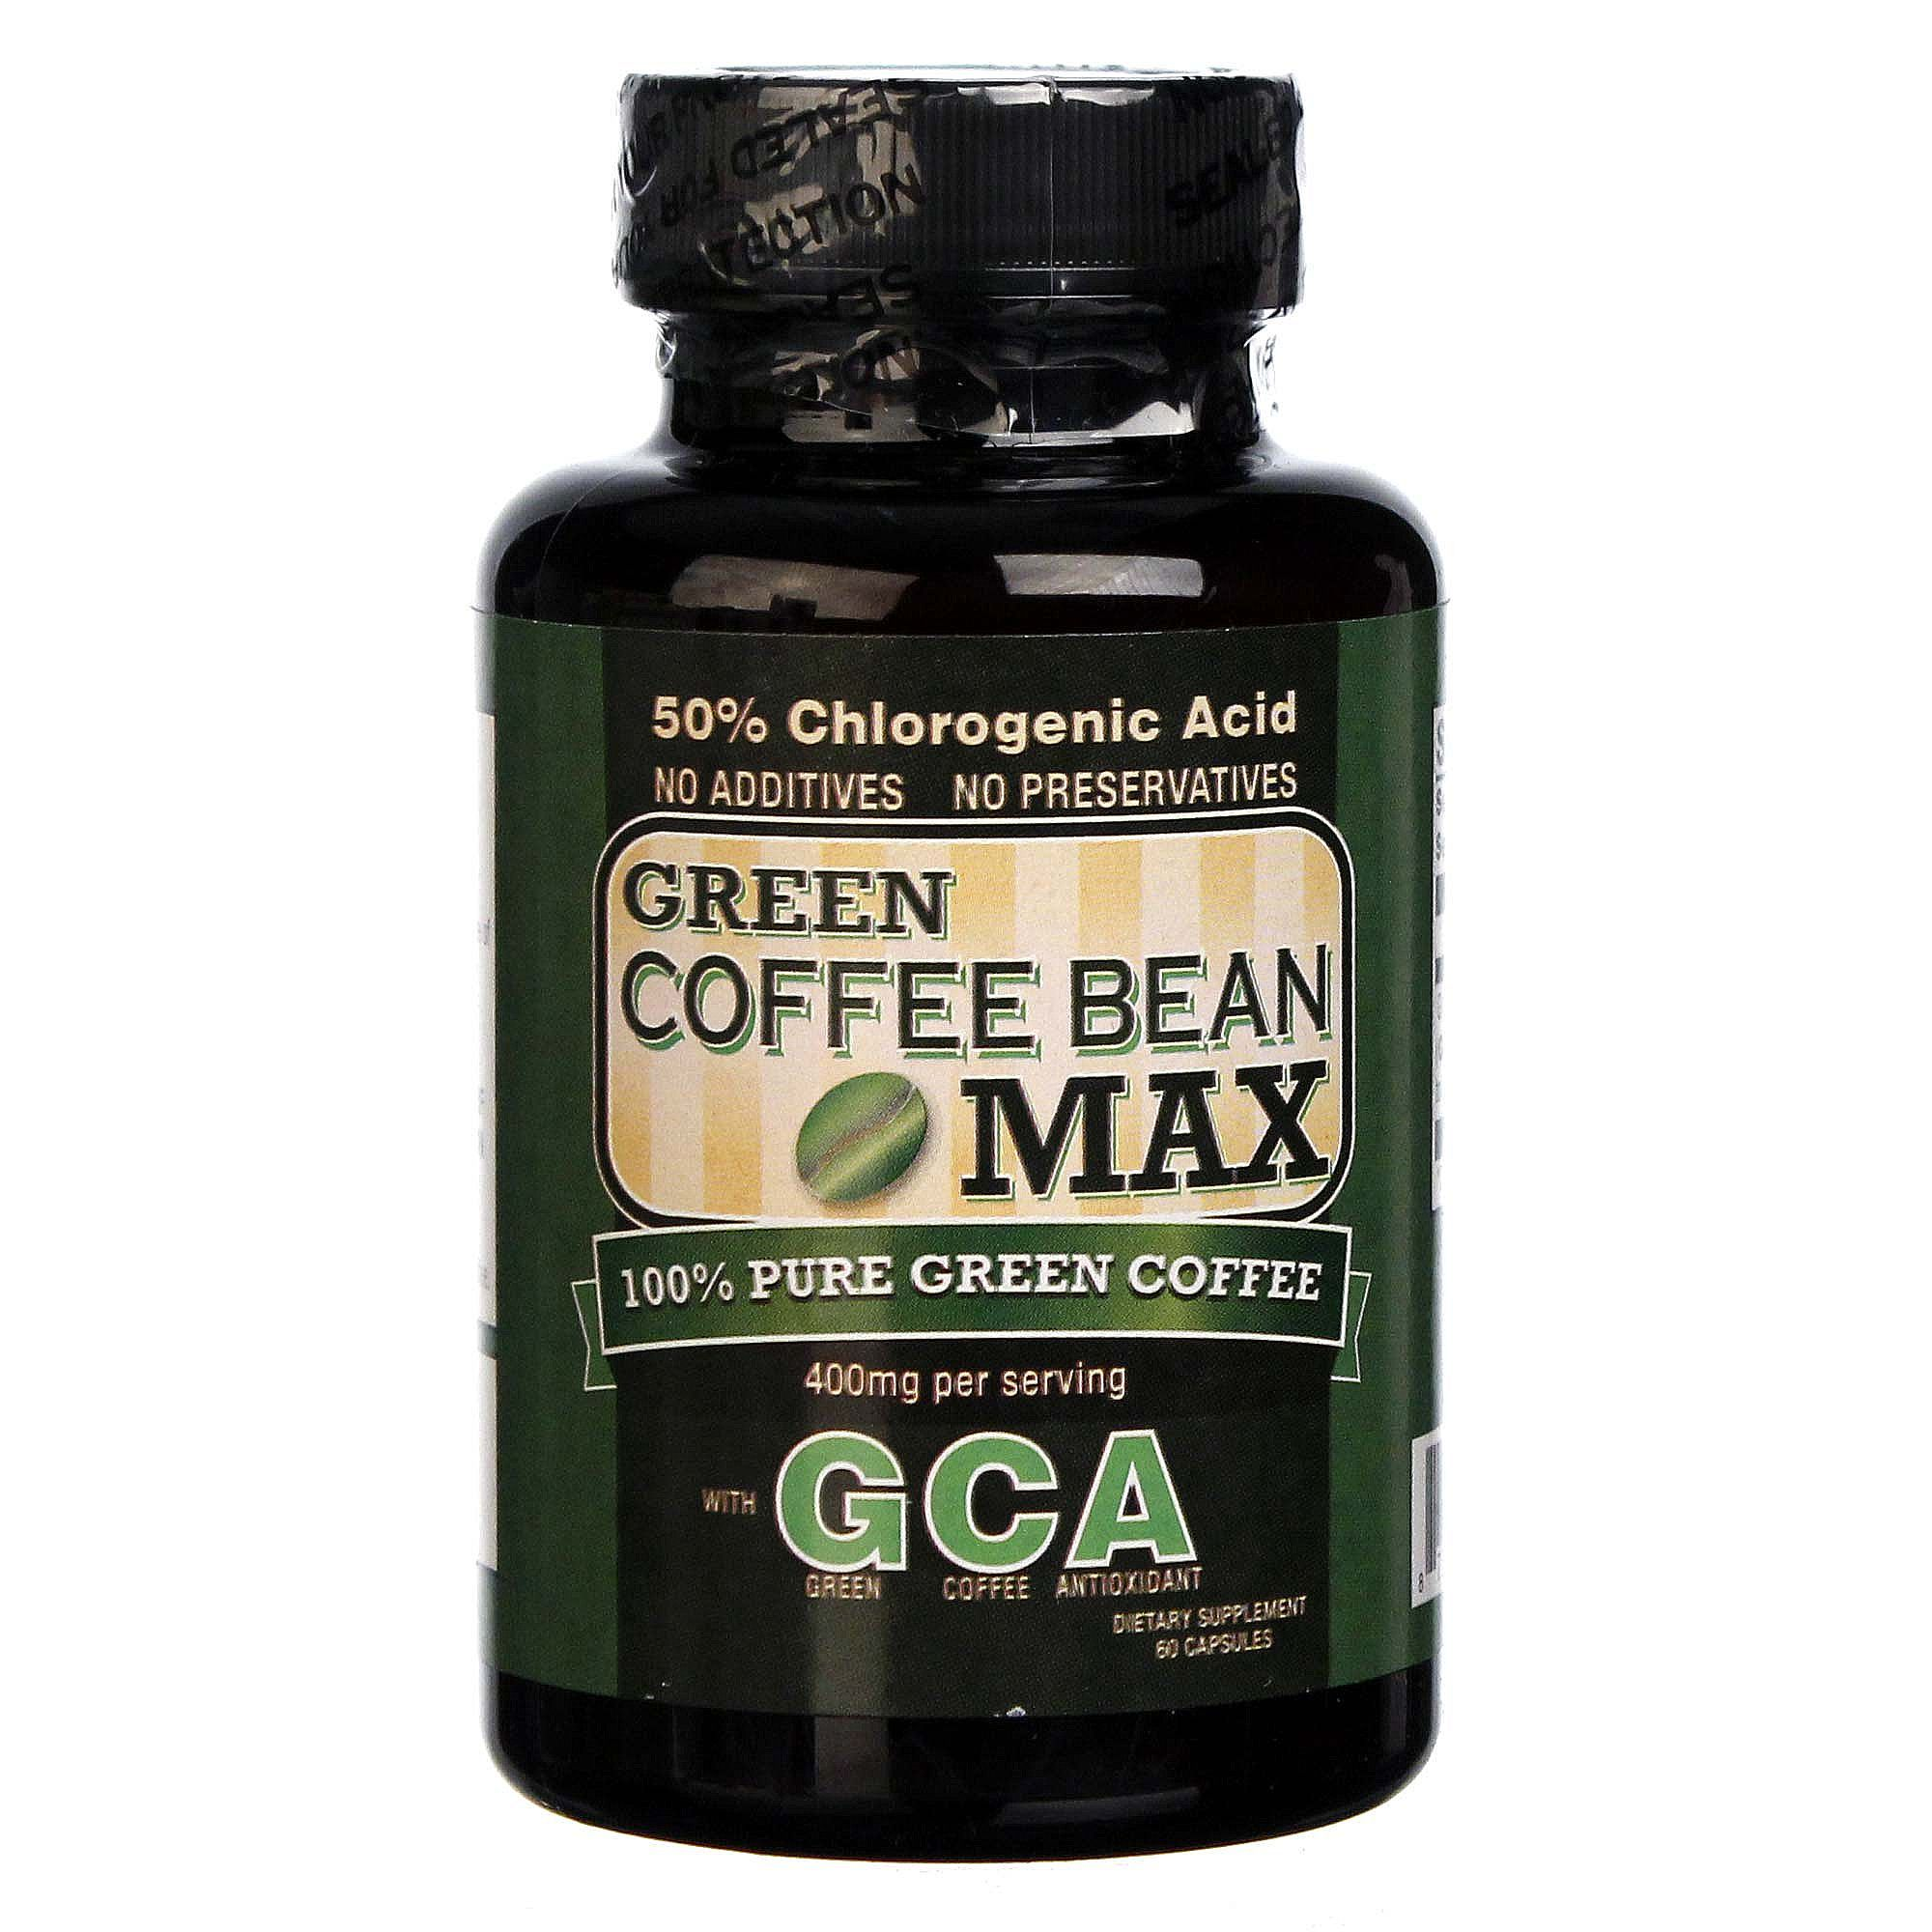 Green Coffee Bean Max Green coffee bean extract, Coffee